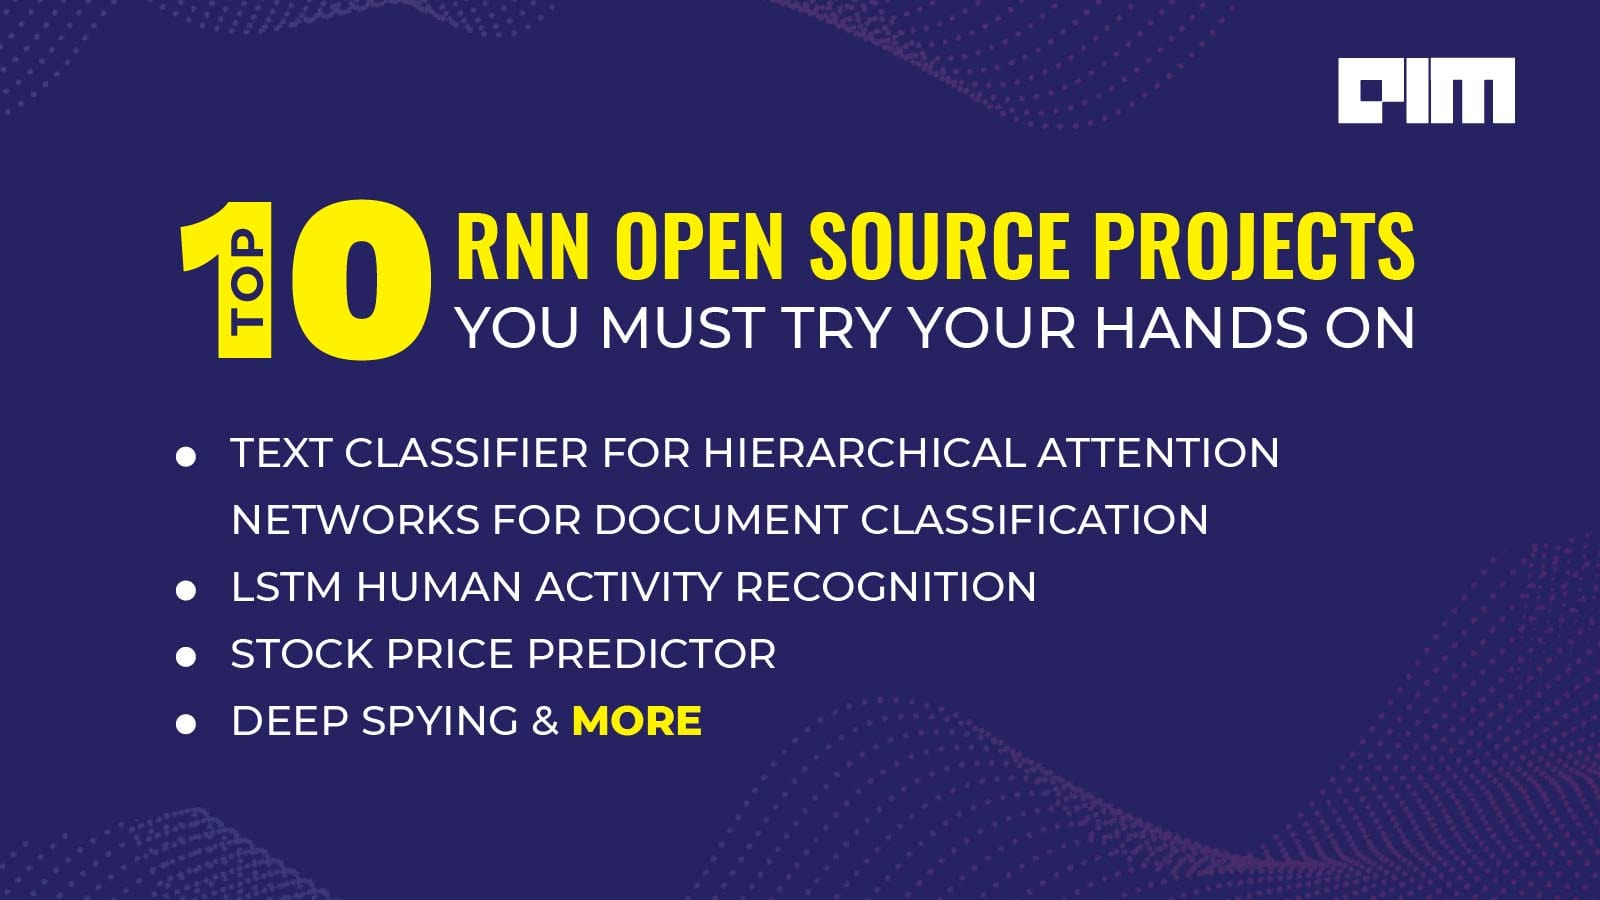 10 RNN Open Source Projects You Must Try Your Hands On